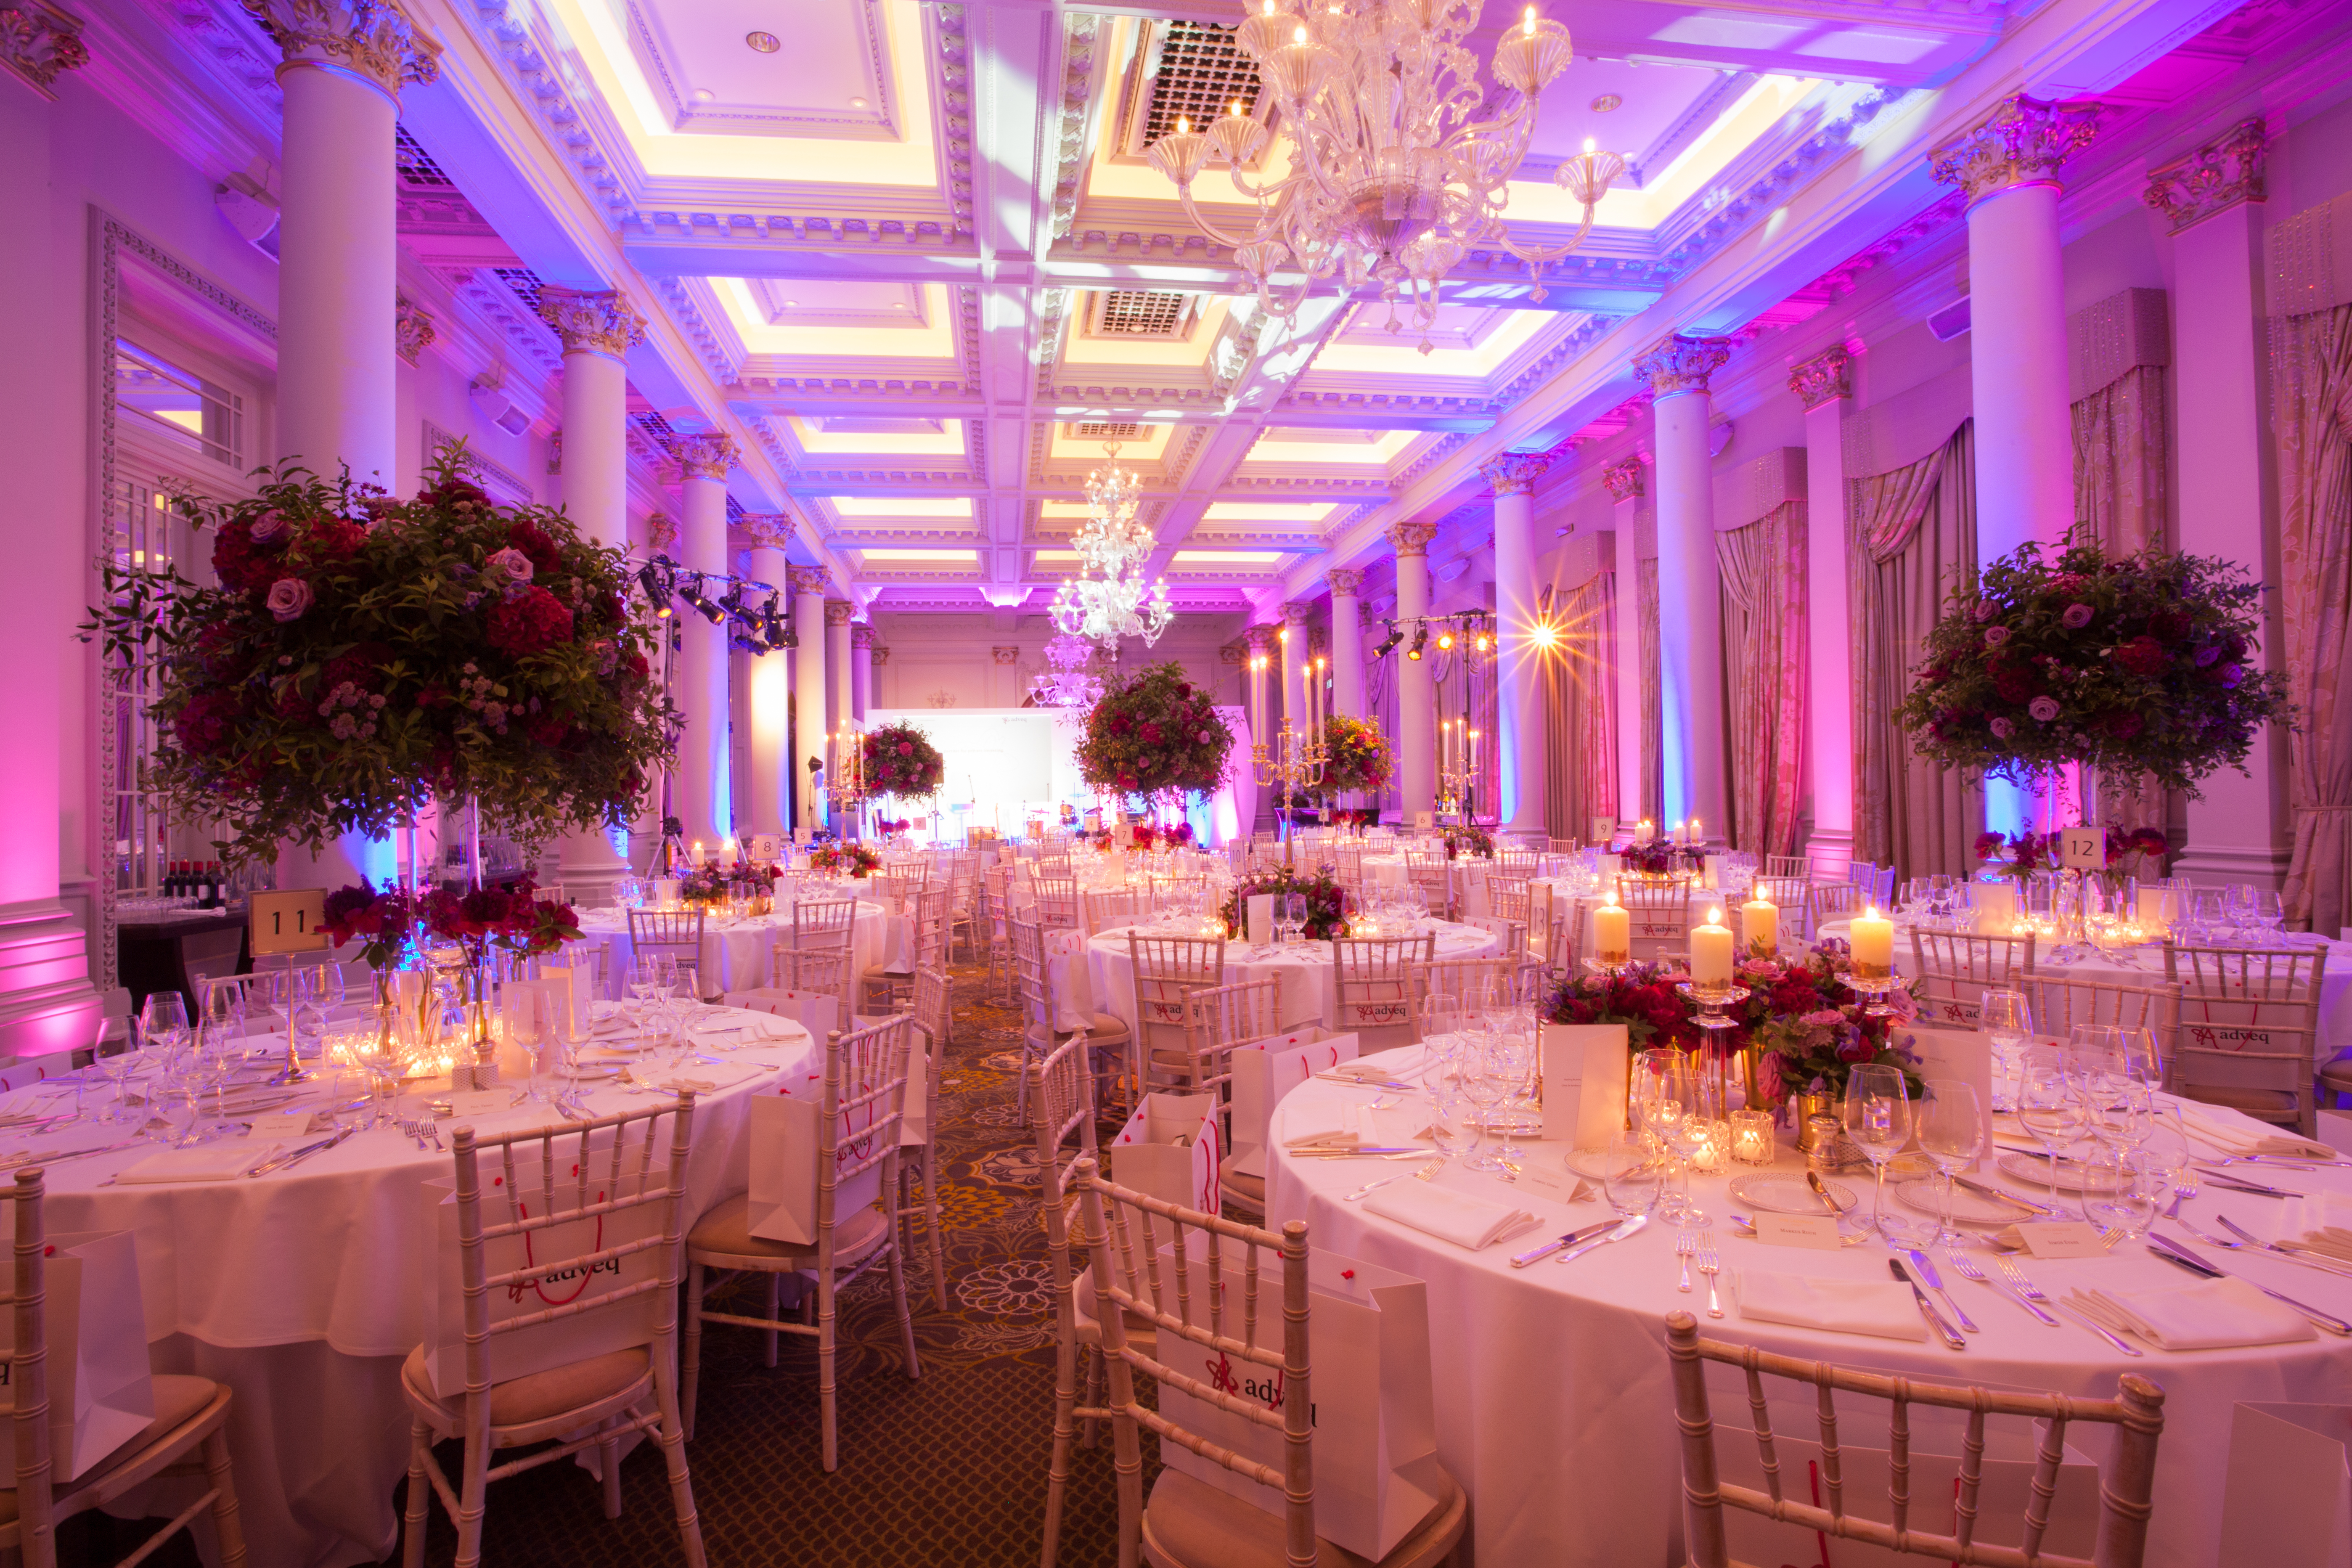 The Langham Hotel Ballroom Marylebon London Contempary Flowers Florist Larry Walshe